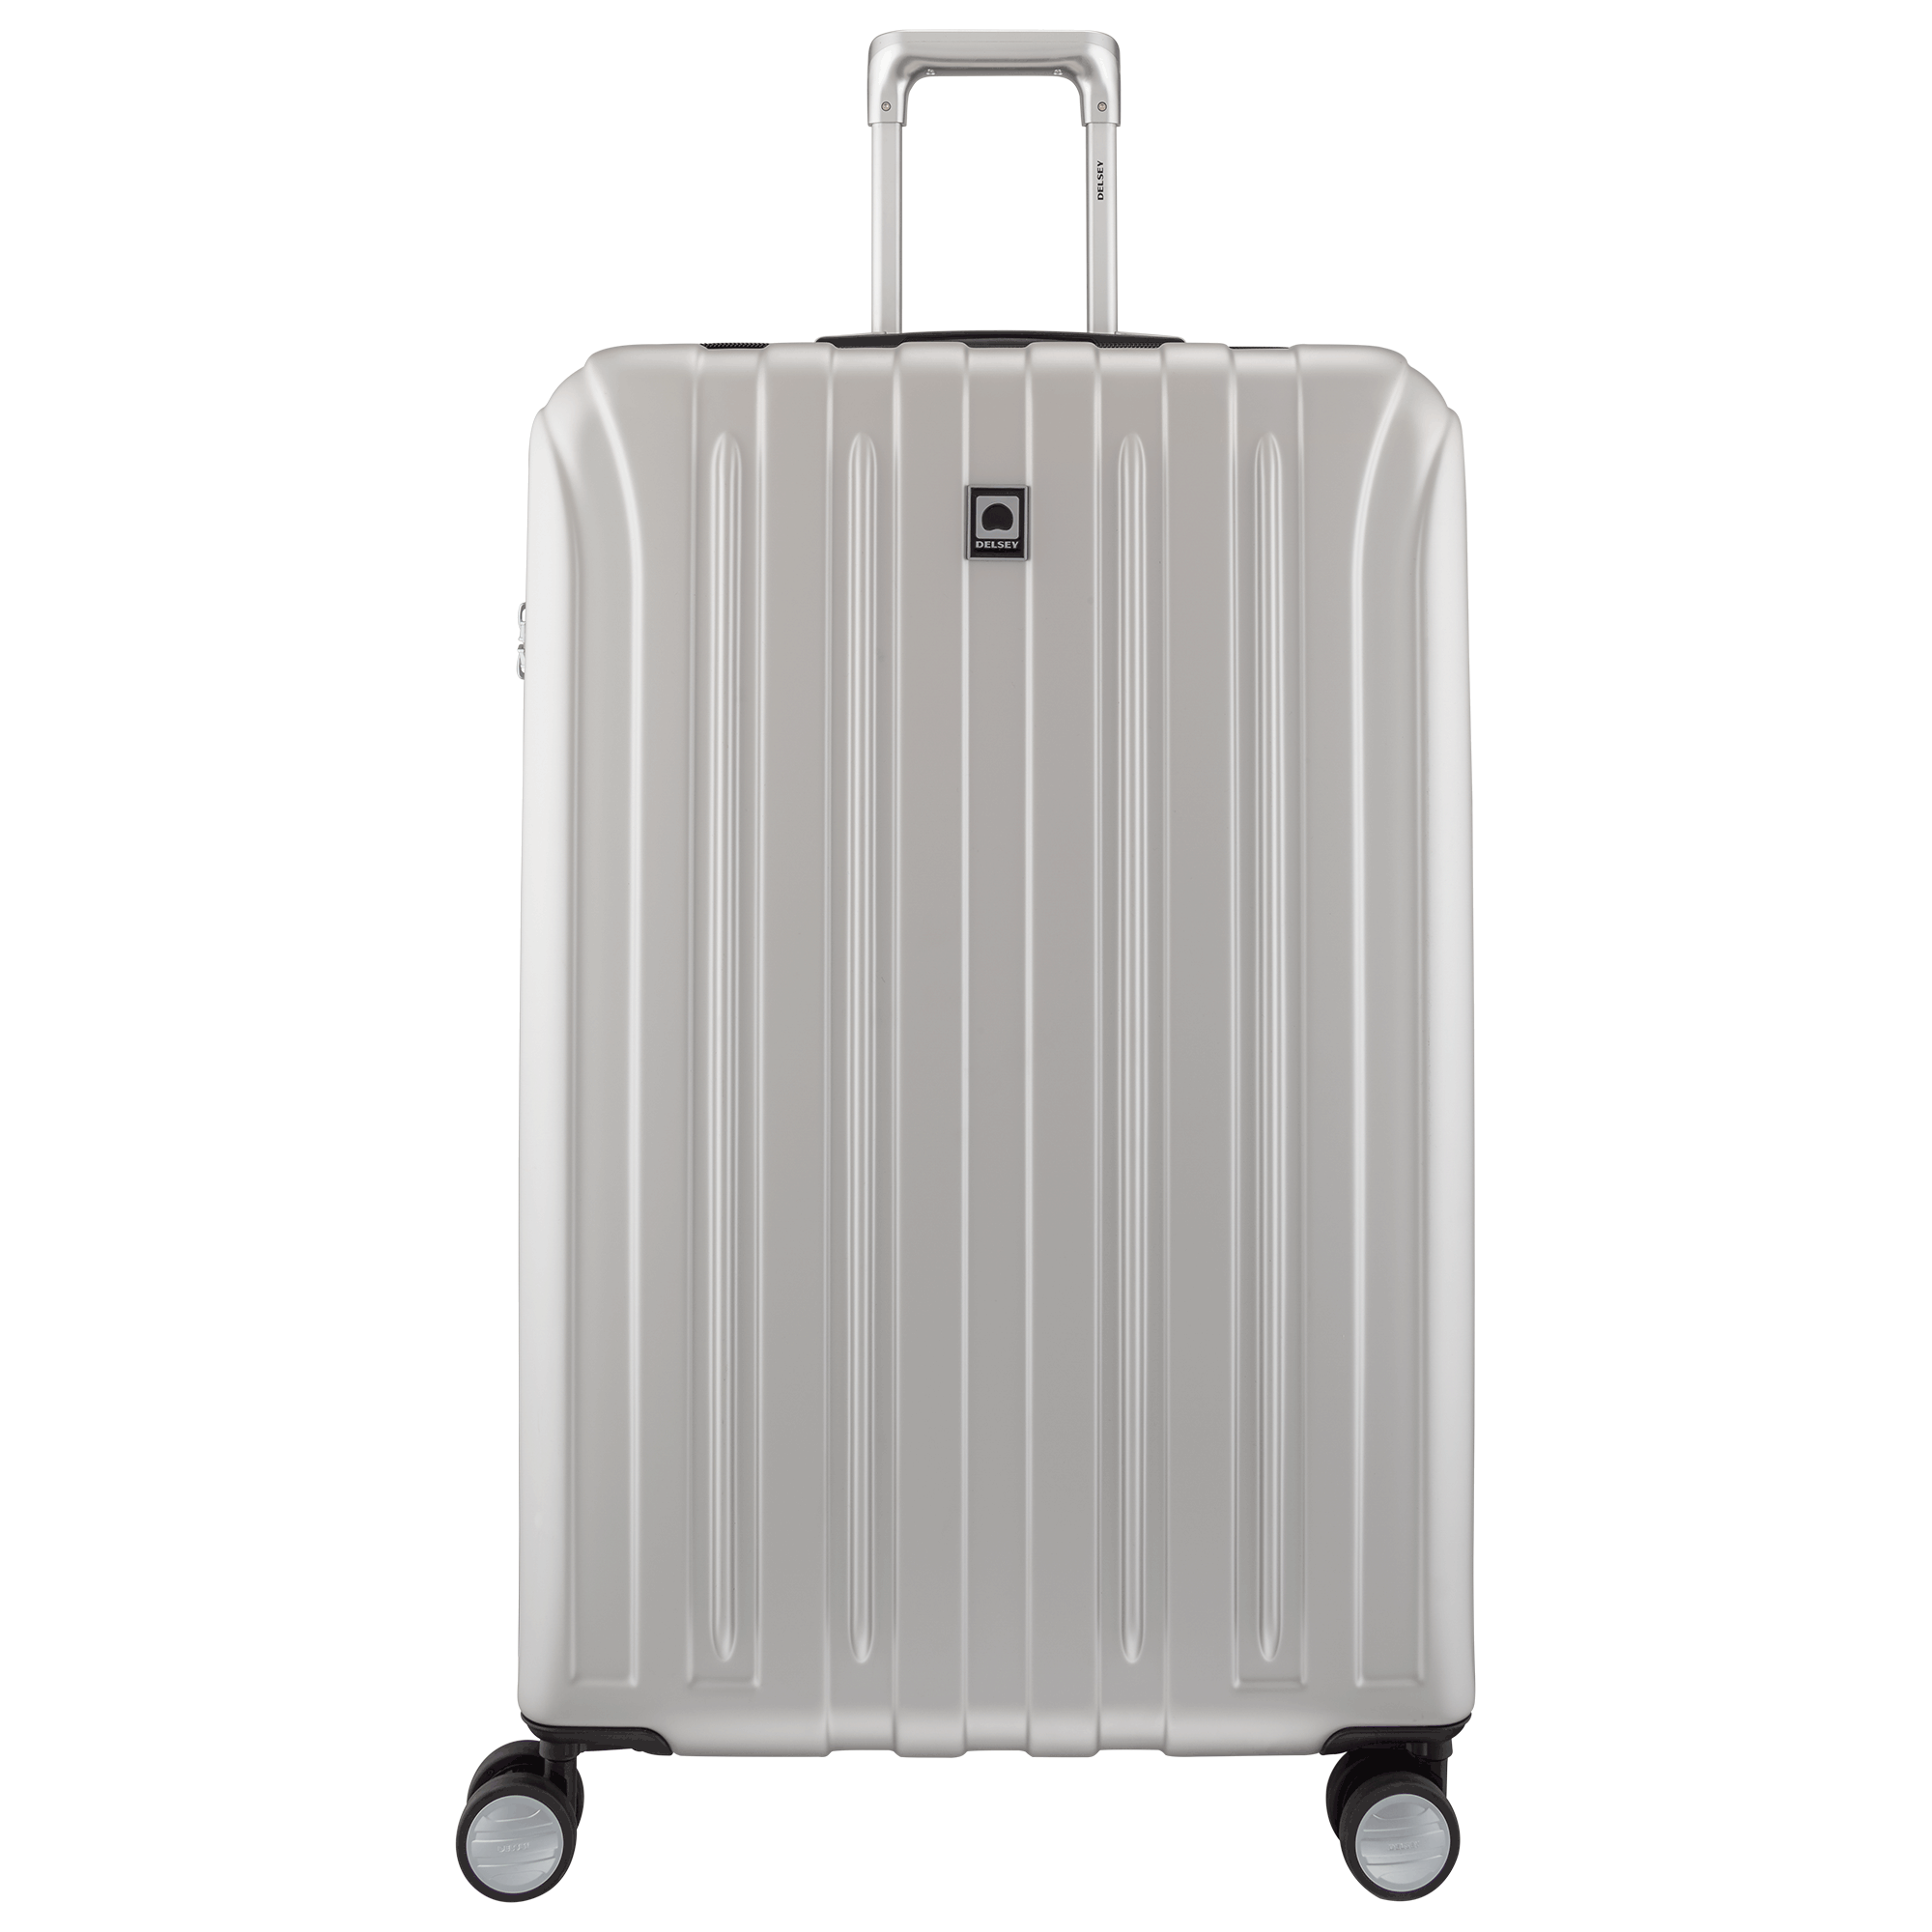 2cdced79a DELSEY - VAVIN 82 CM 4 DOUBLE WHEELS EXPANDABLE TROLLEY CASE | My ...